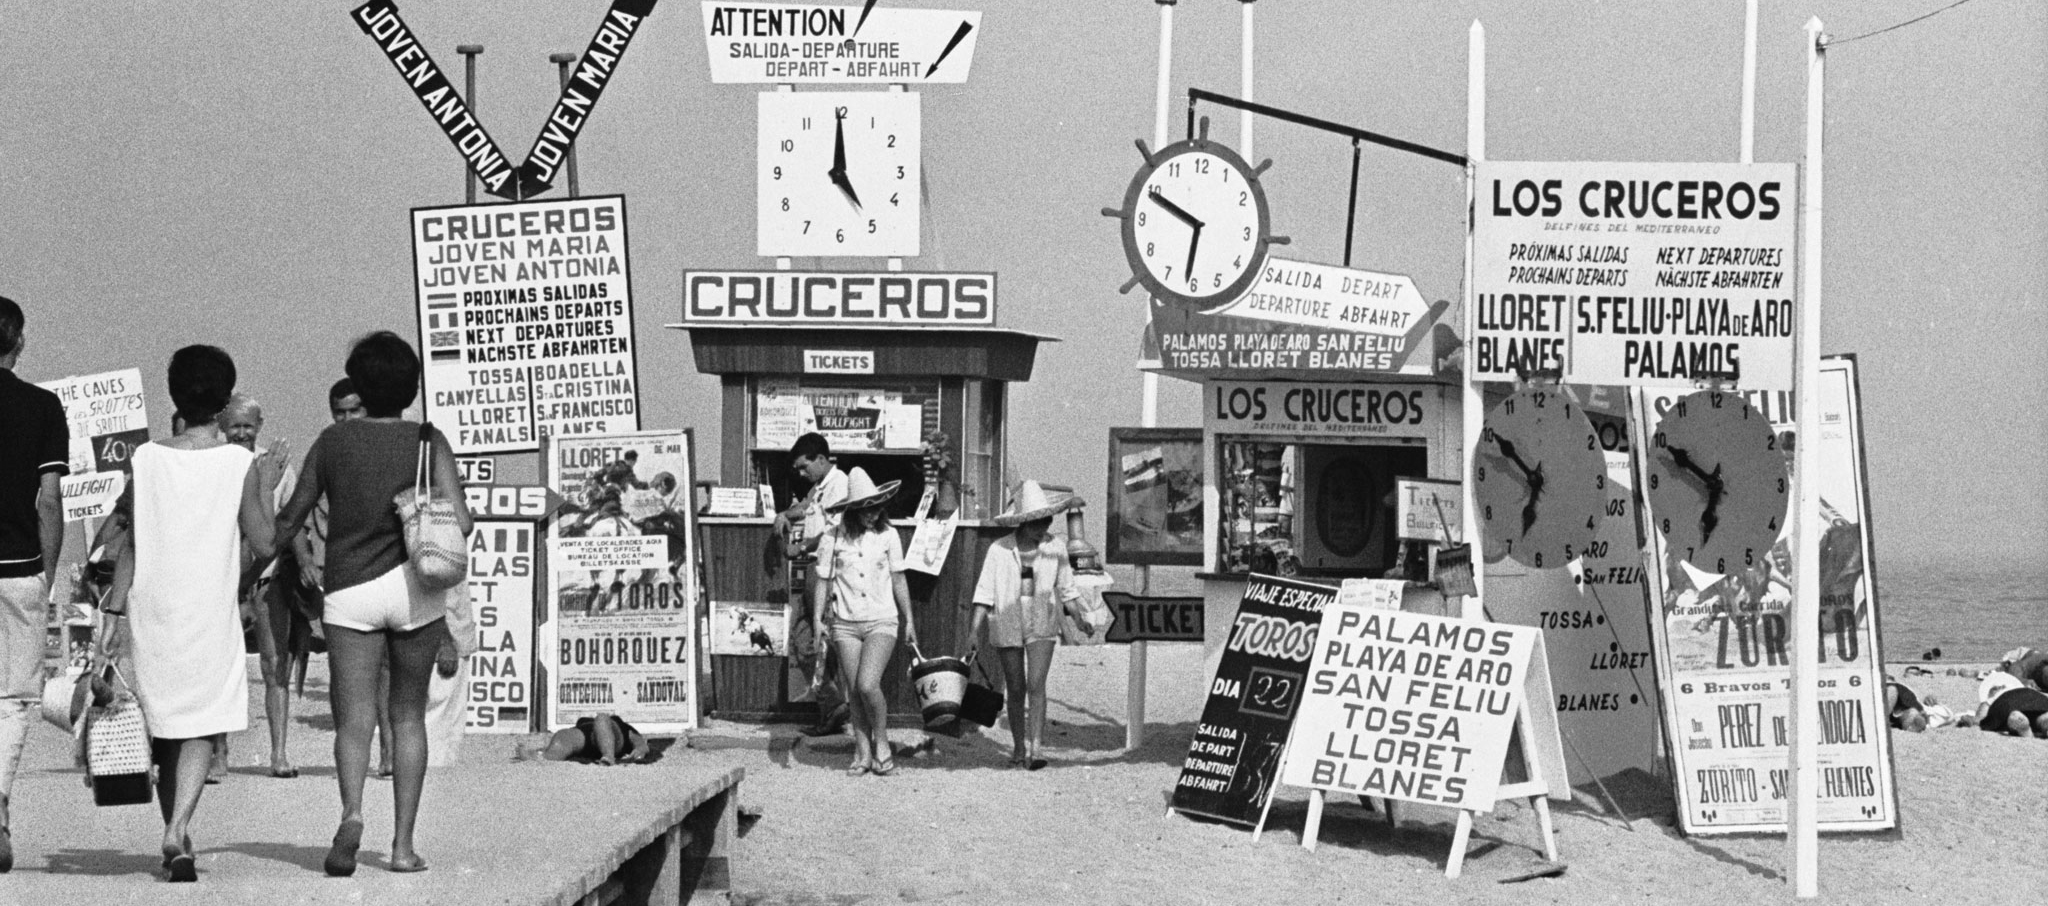 Costa Brava Show by Xavier Miserachs. Image courtesy of La Fabrica